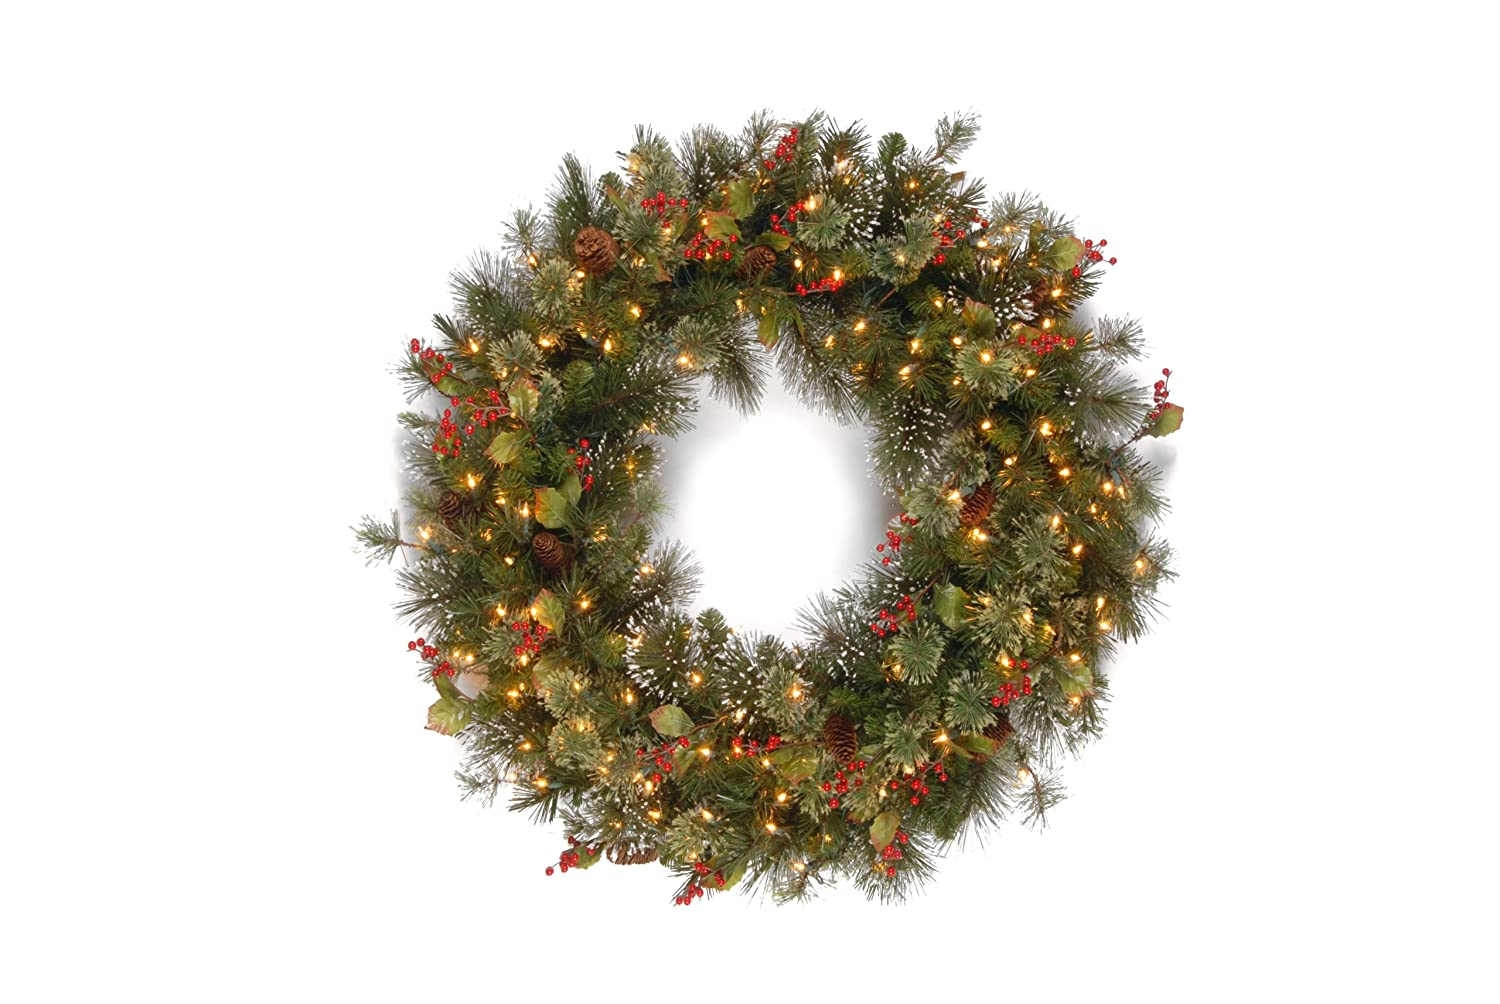 National Tree 48 Inch Wintry Pine Wreath with Cones, Red Berries, Snowflakes and 200 Clear Lights (WP1-300-48W) National Tree - Drop Ship